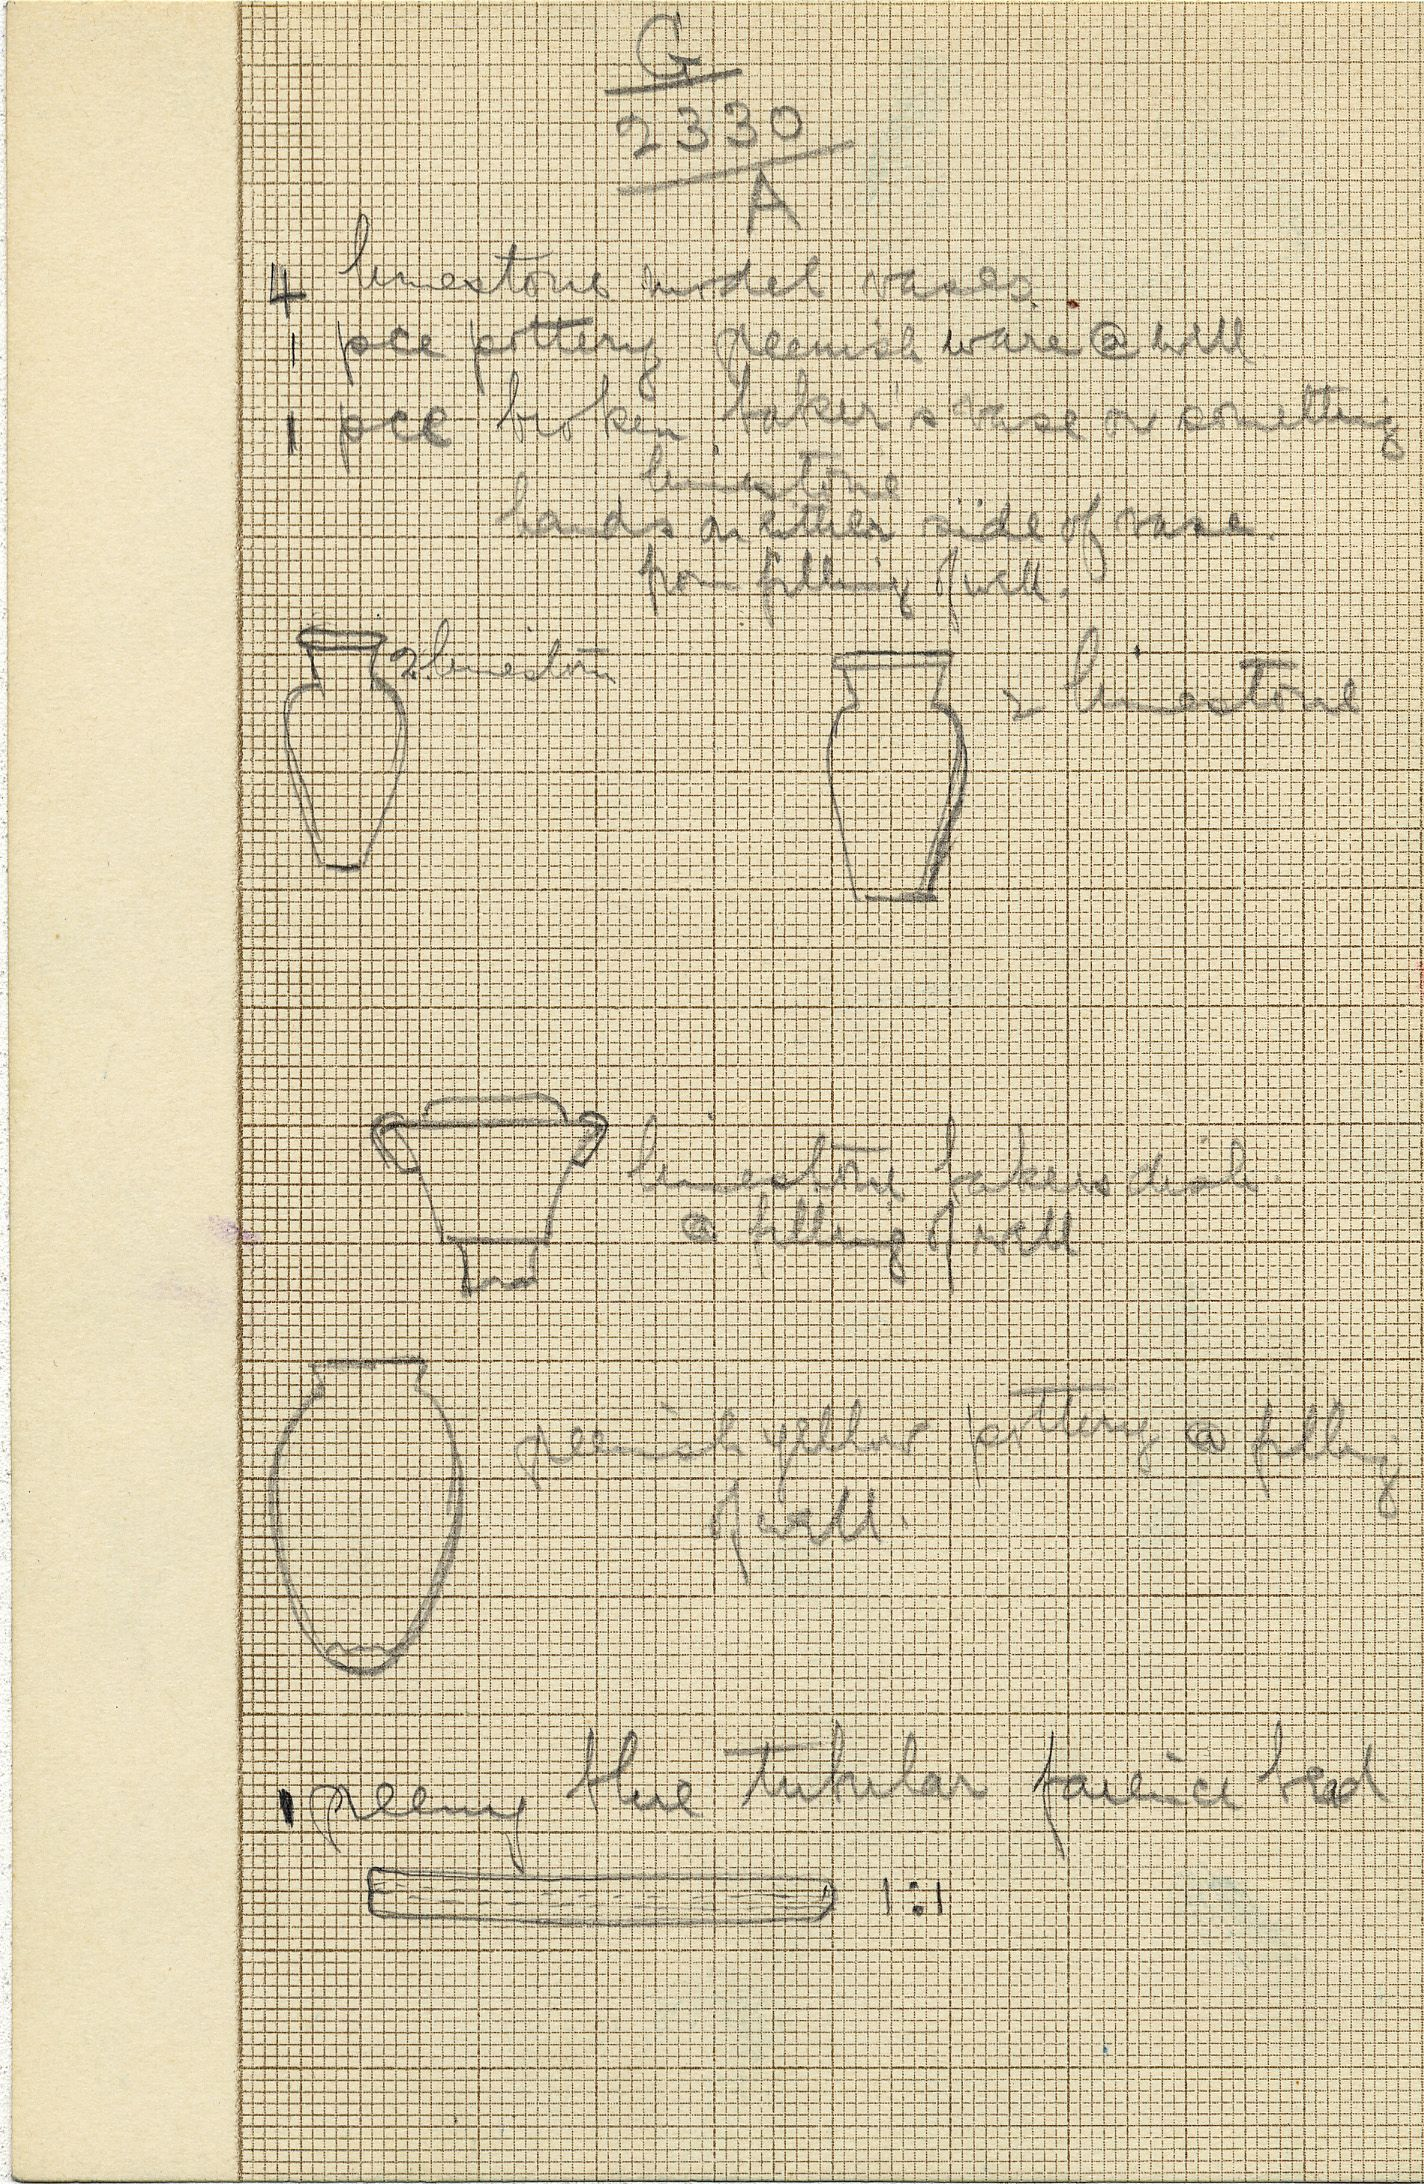 Drawings: G 2330 = G 5380, Shaft A, objects